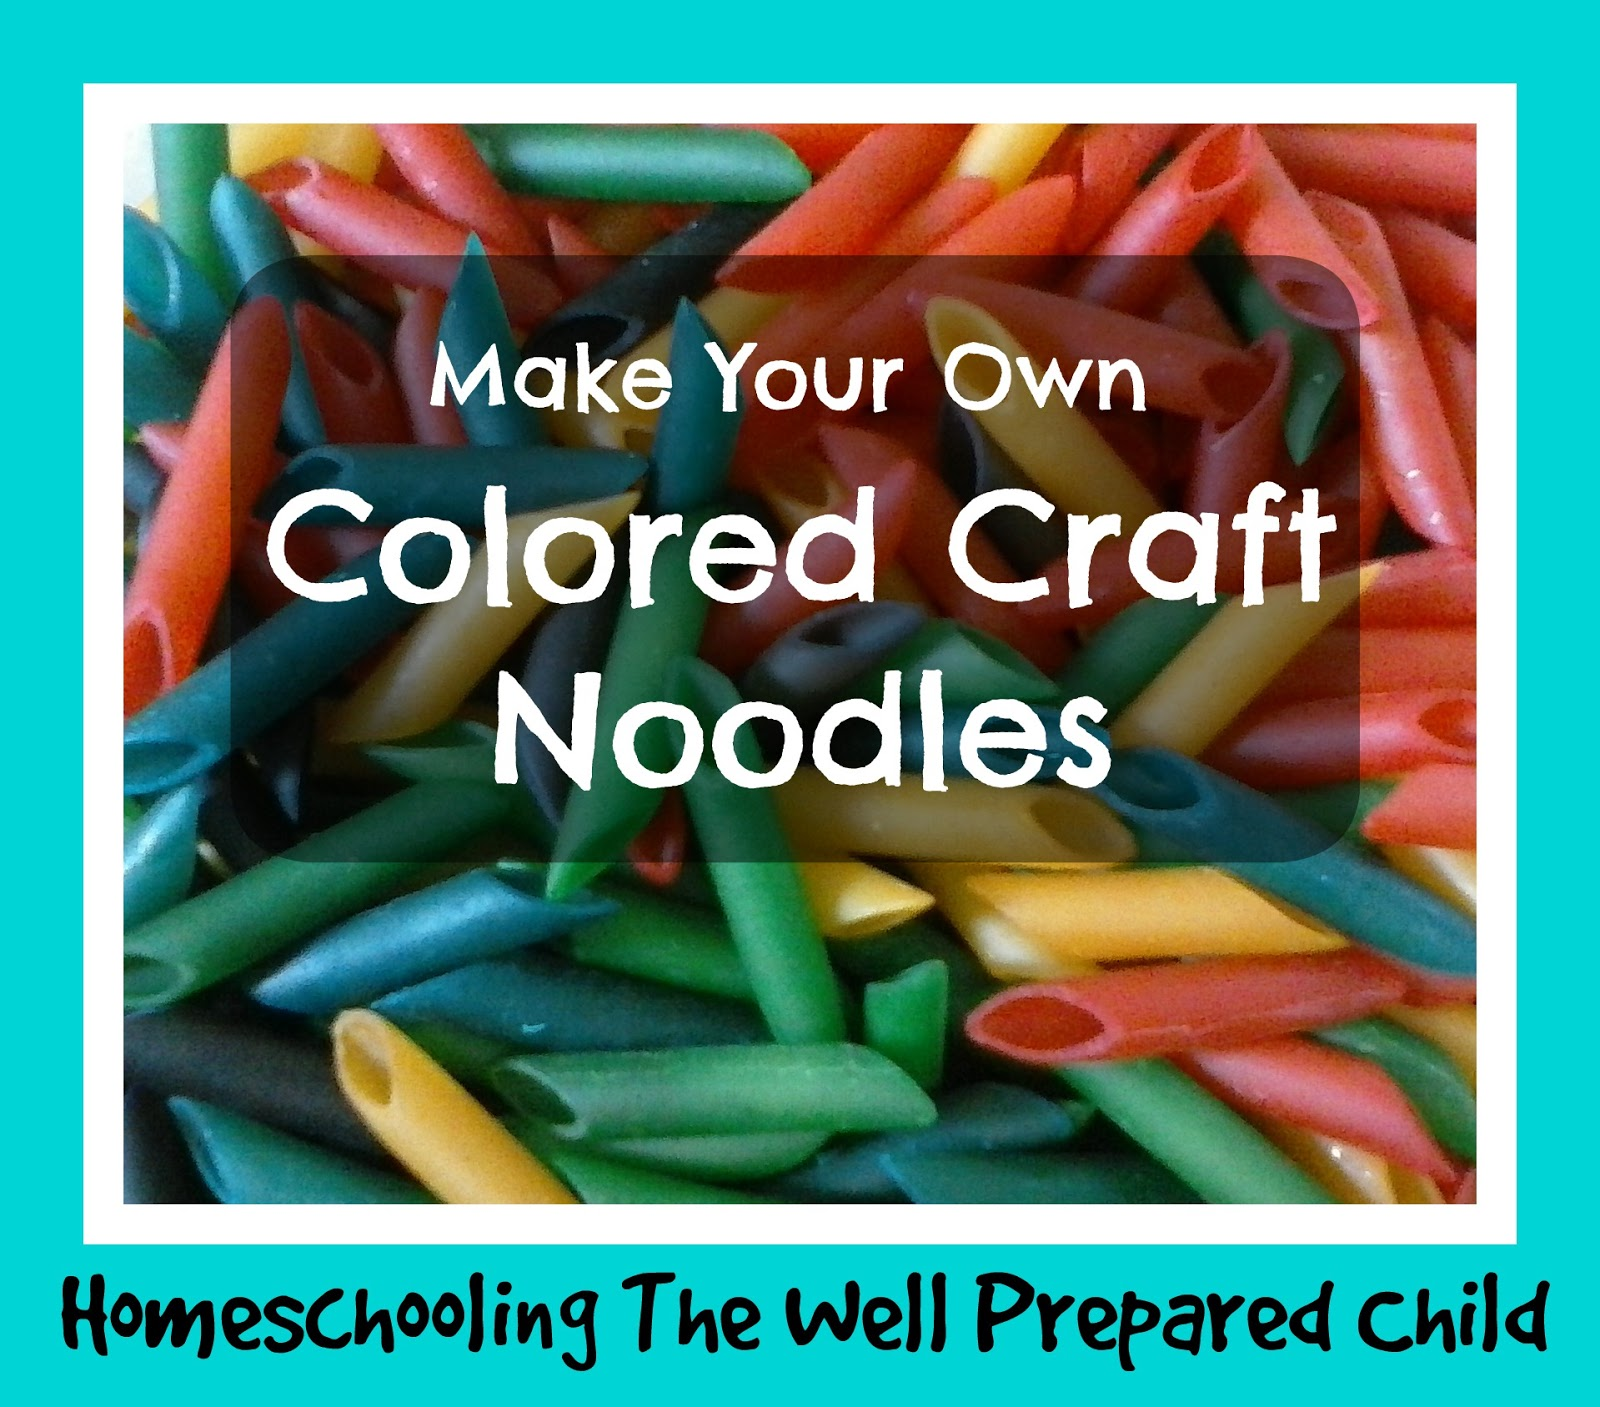 Homeschooling The Well Prepared Child Make Your Own